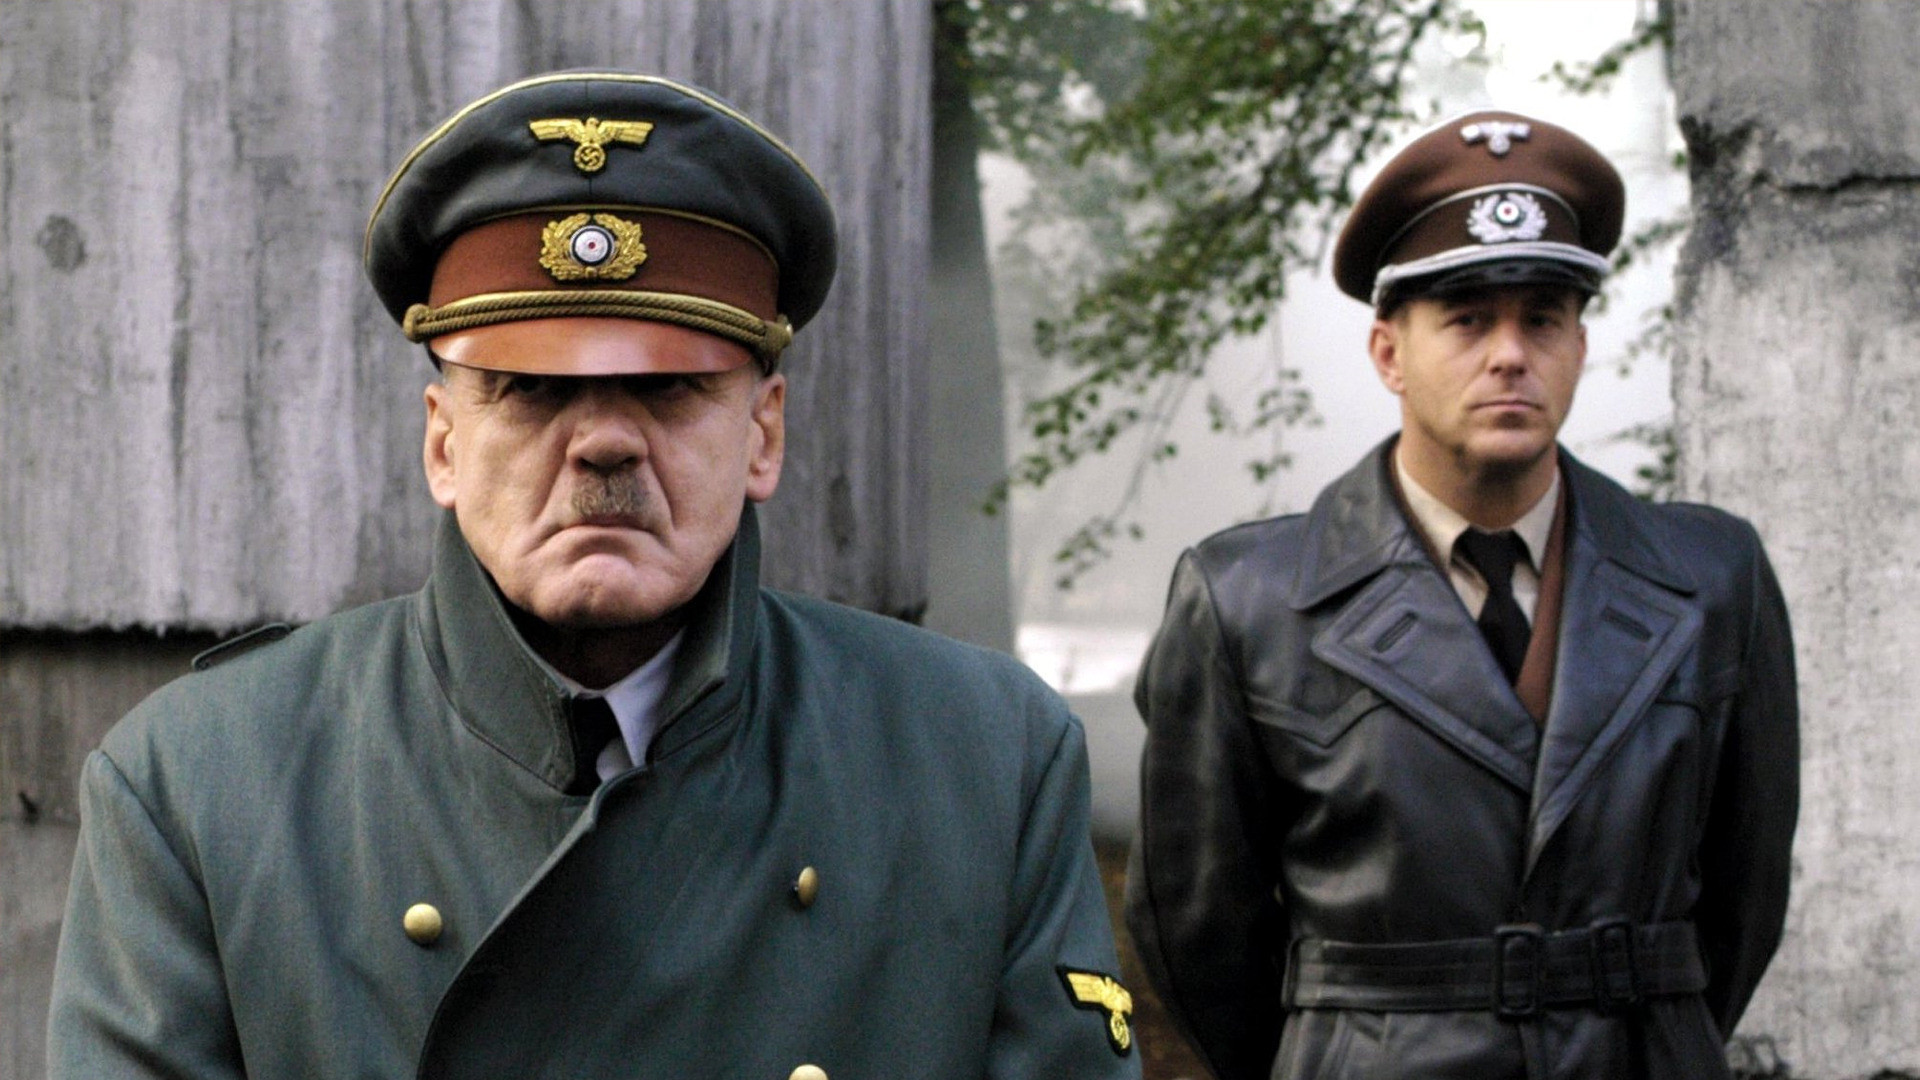 an analysis of the downfall of hitler a german dictator from world war two Economic and political causes of world war two appeasement: allies give in to hitler when germany violates the treaty of versailles by creating a union between austria and germany in march 1938, the western nations appeased hitler by not enforcing the treaty.